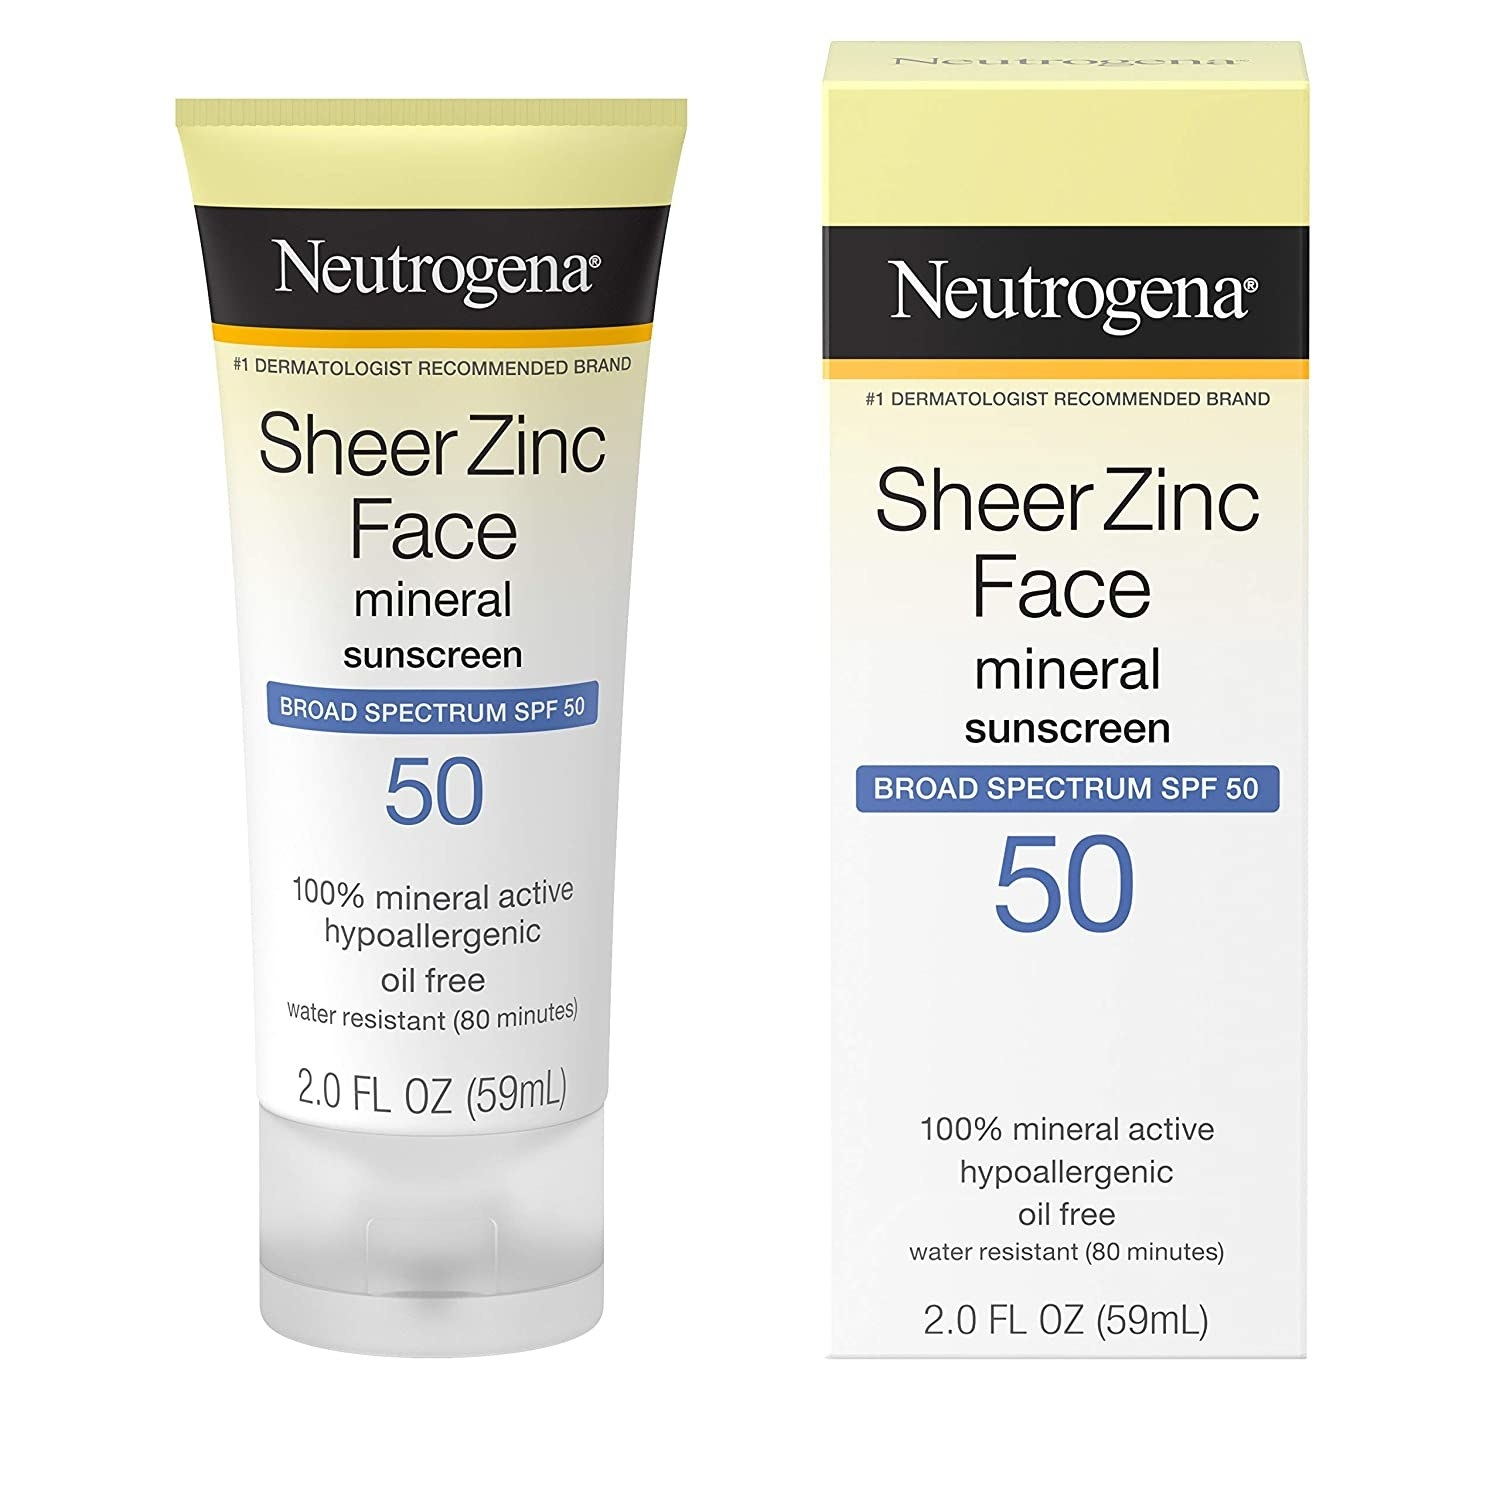 the sunscreen in its tube, next to the product packaging